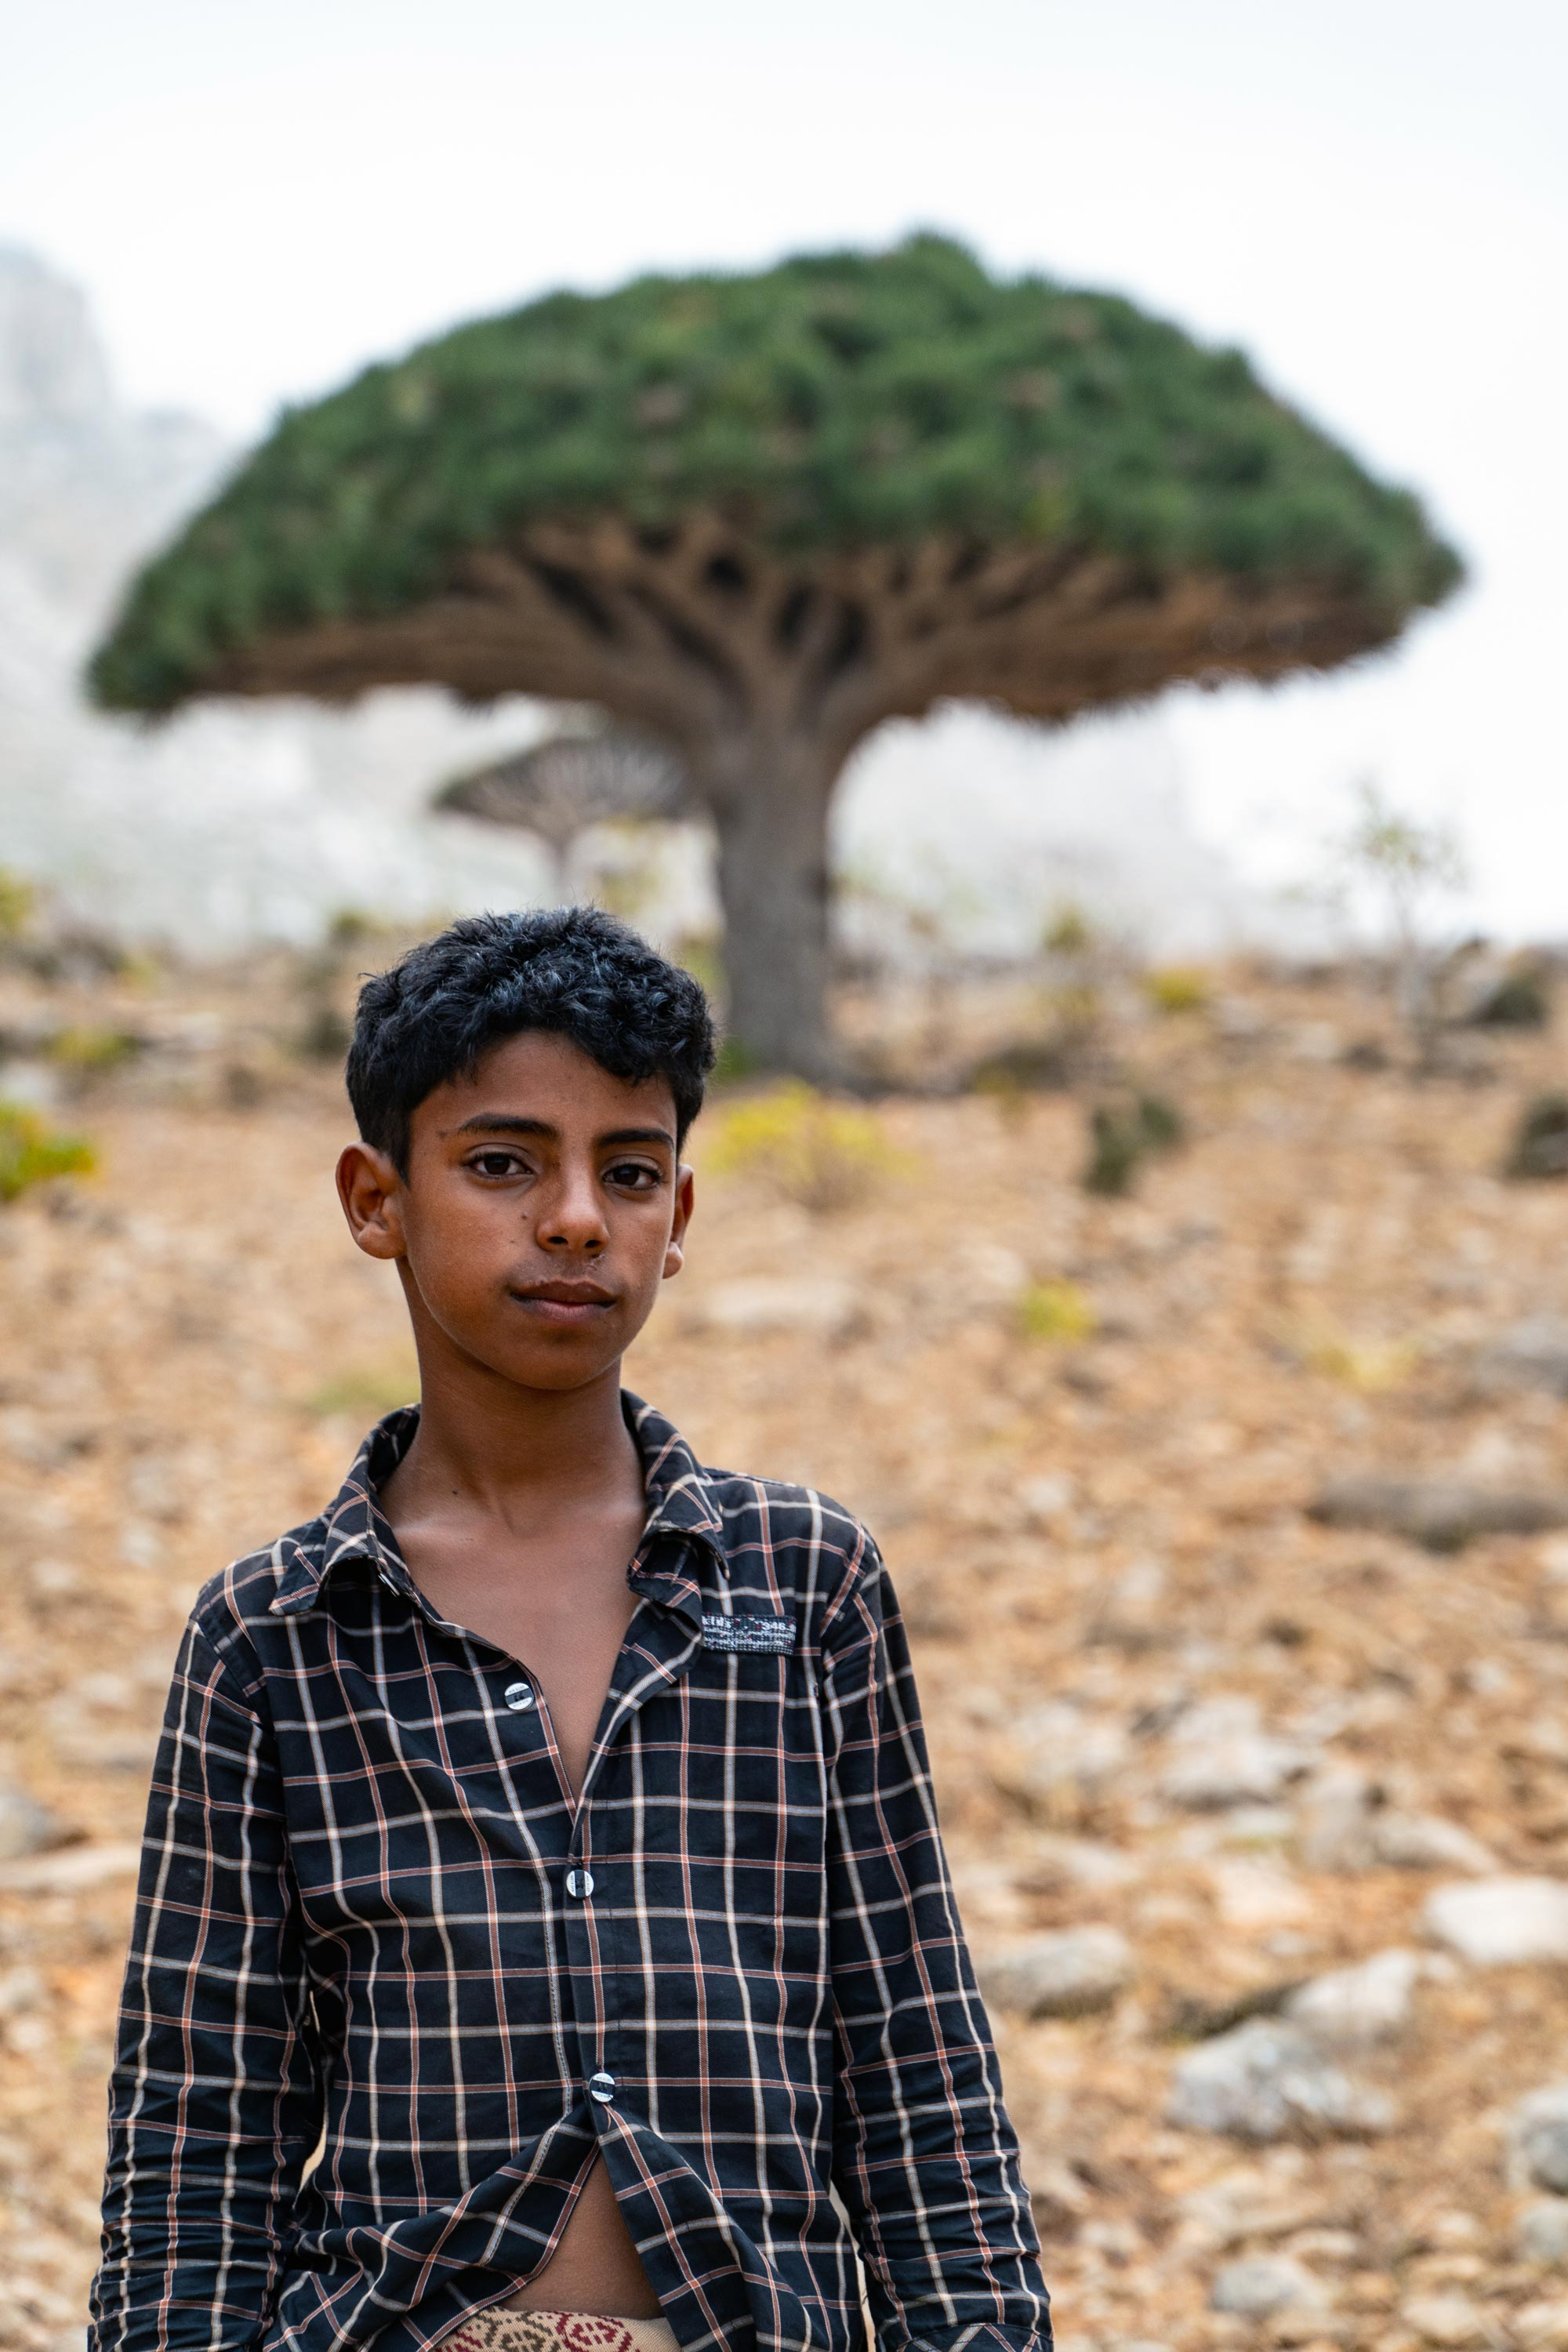 A young Socotri boy sells Dragons Blood Tree resin in Homhil. The resin is said to have medicinal qualities for women, and can be used as a cosmetic. It's bright red in colour, hence the name Dragons Blood.